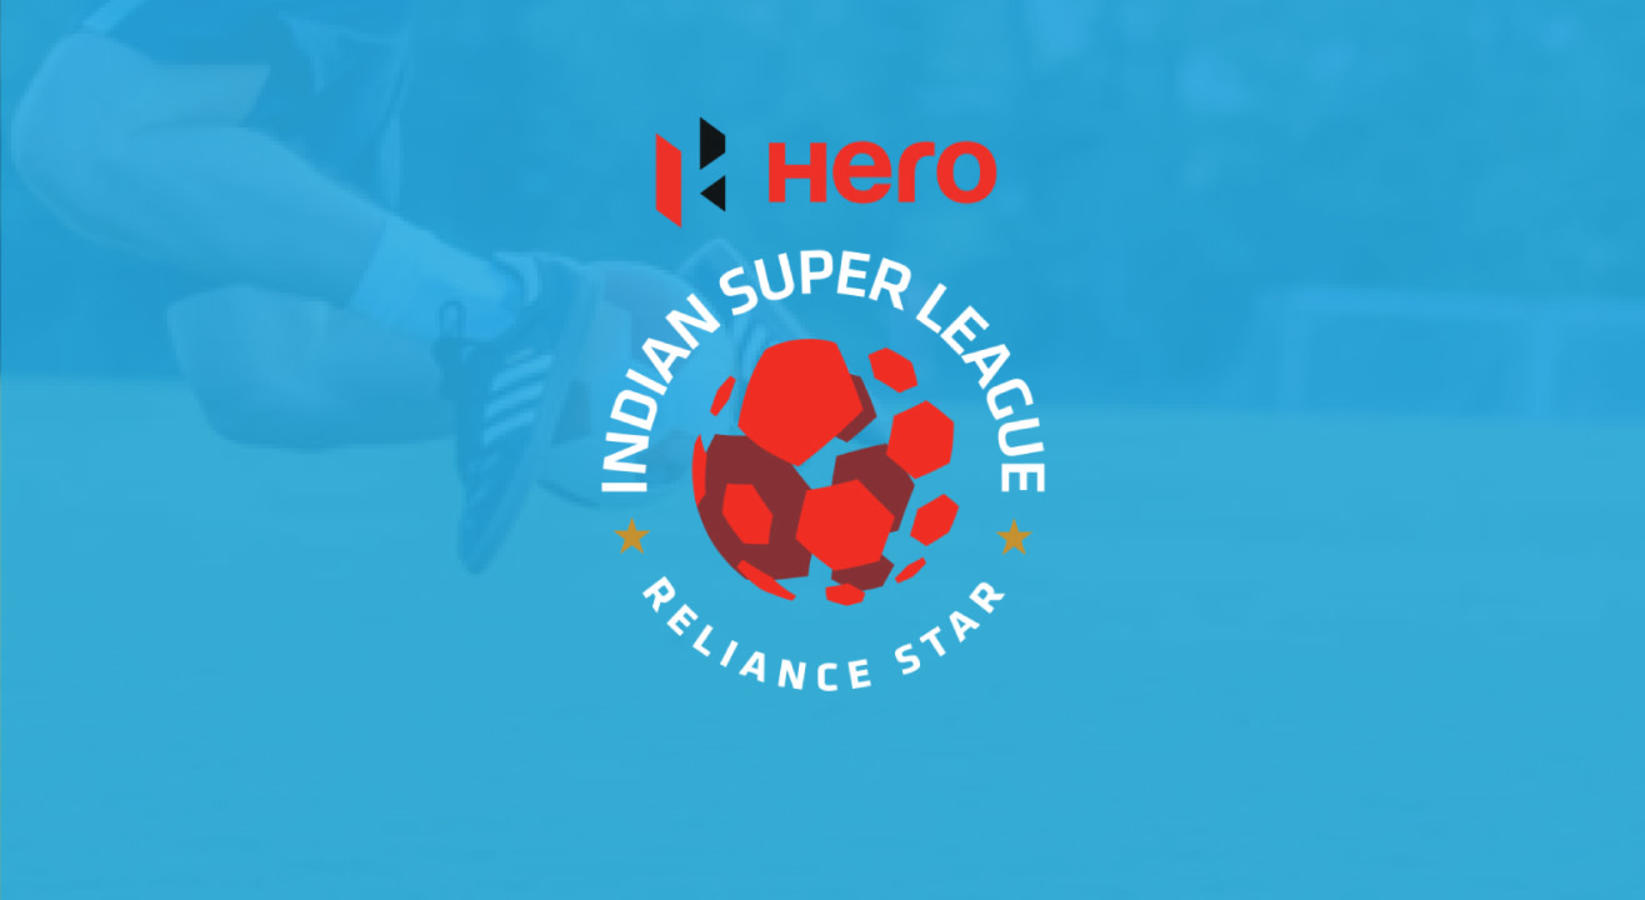 Indian Super League 2018-2019: Tickets, Memberships, Season Tickets, Ticket Offers, Schedule & More